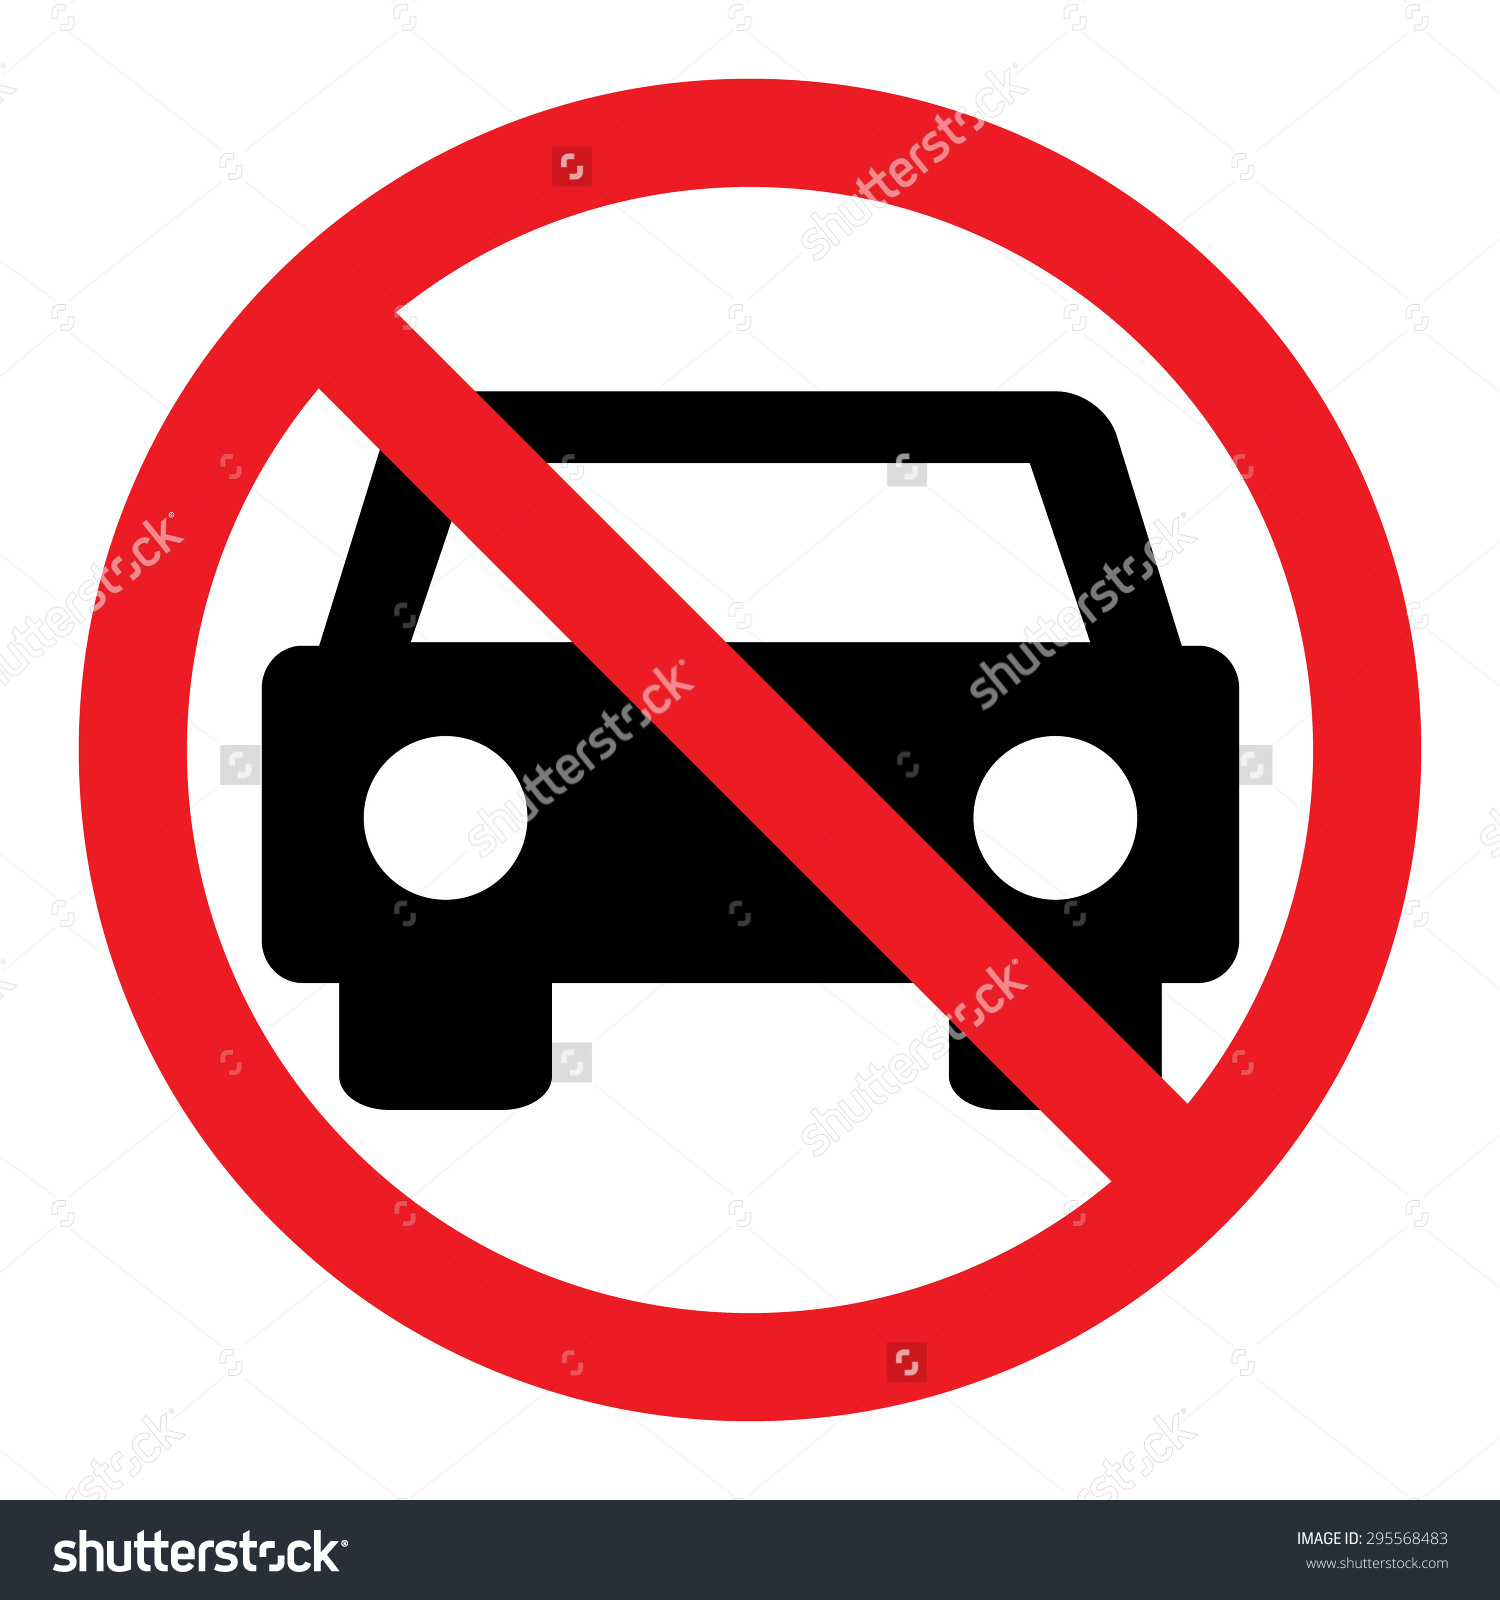 Symbol for no choice image symbol and sign ideas cute symbol for motor photos electrical circuit diagram ideas prohibited for motor vehicles clipart clipground buycottarizona buycottarizona